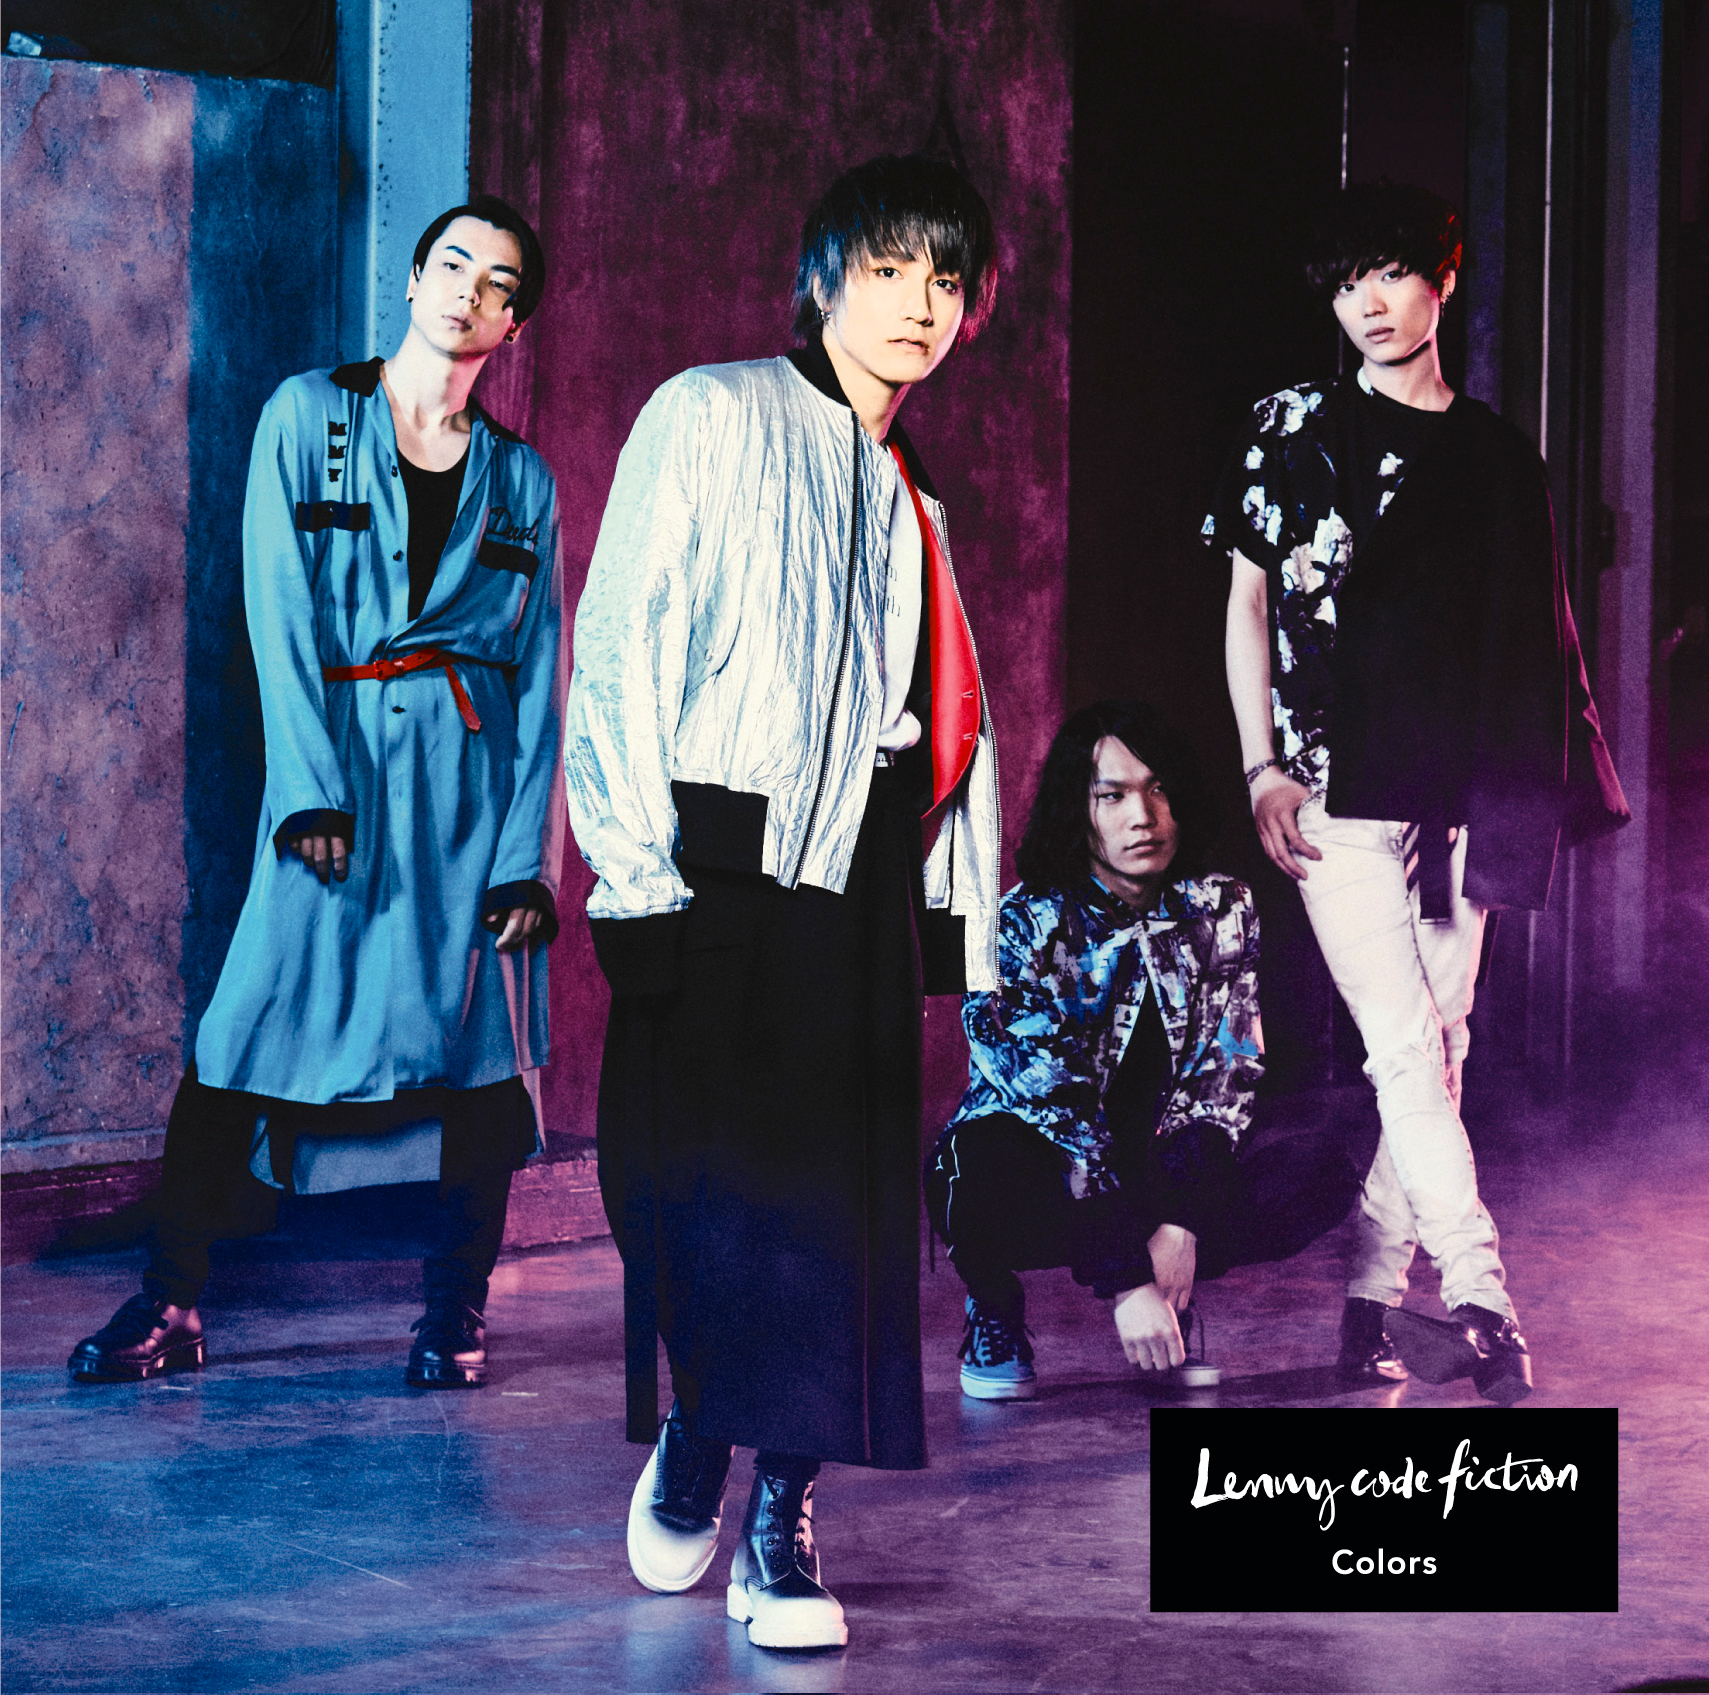 Lenny code fiction 3rd Single 「Colors」期間生産限定盤